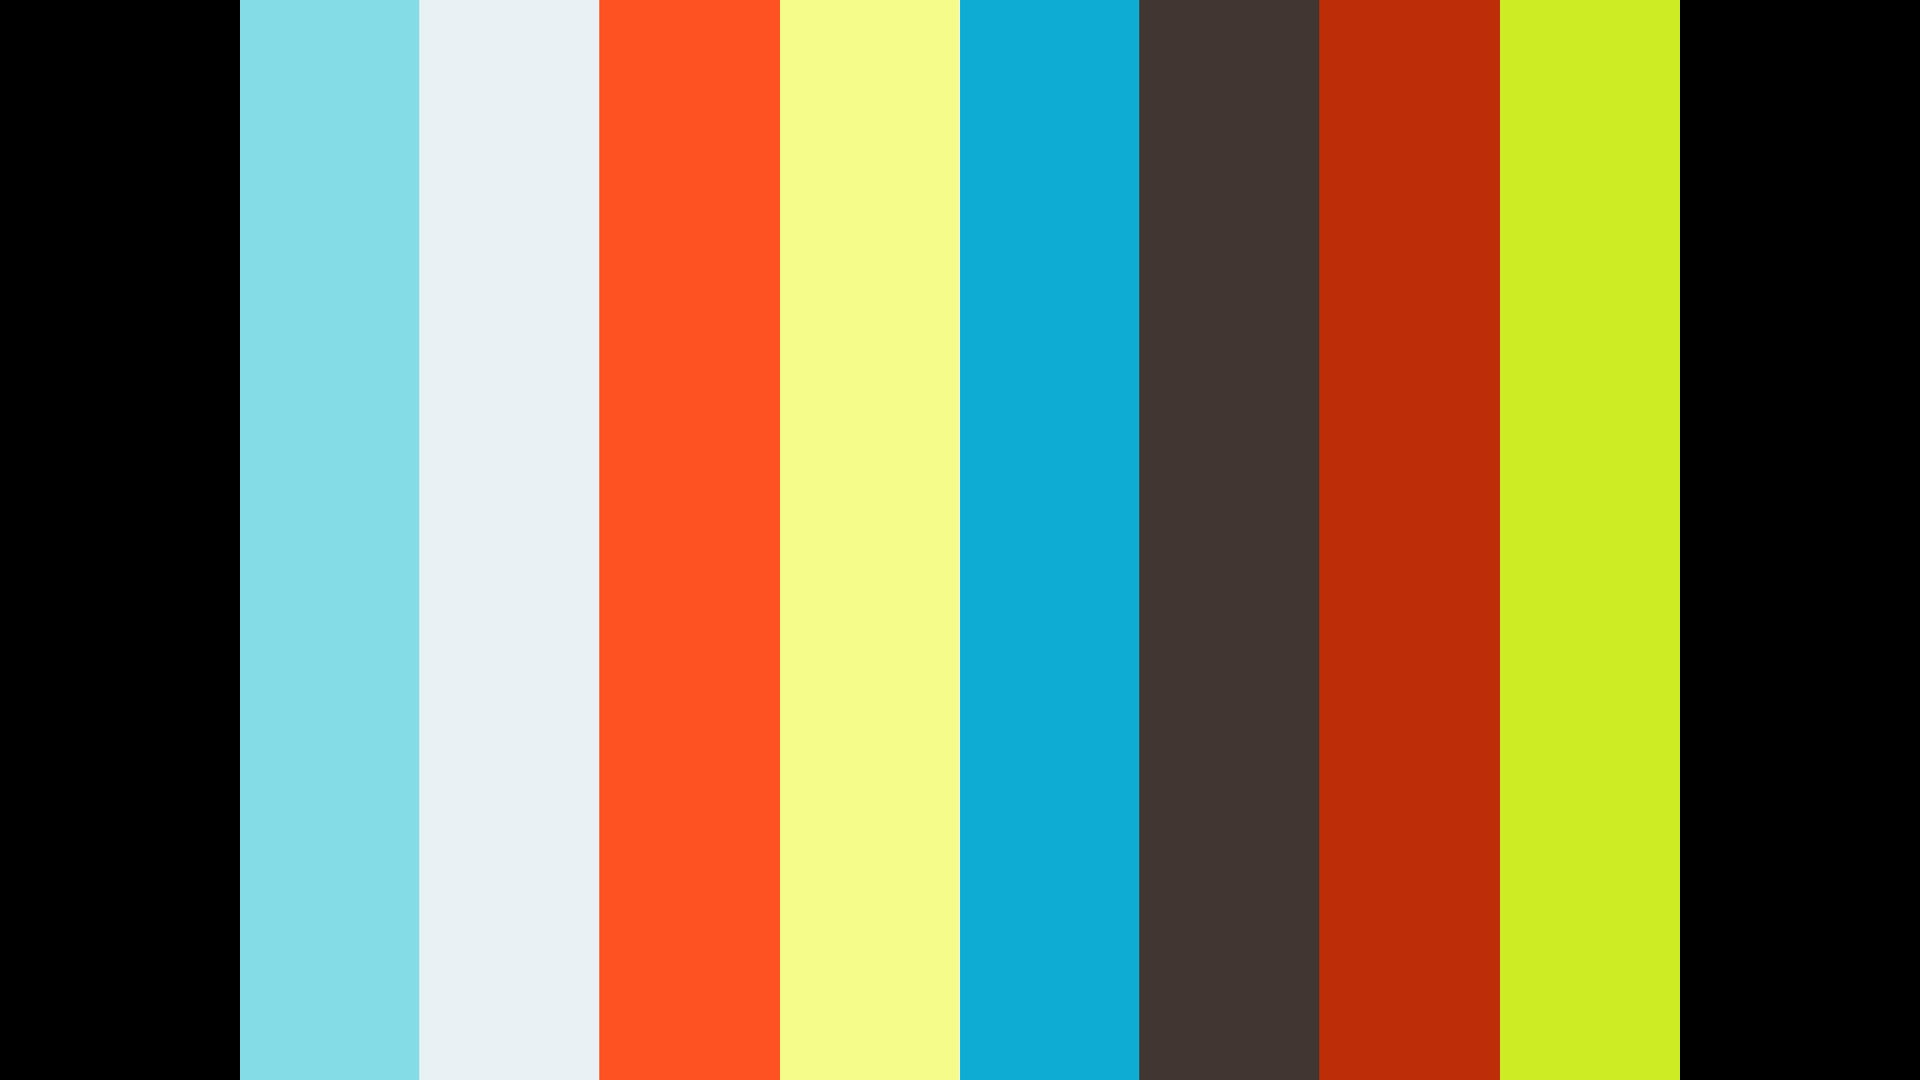 Market News #96. Chevron's $11bn write-down. GM puts $1.5bn in midsize trucks. INTC buys Habana Labs